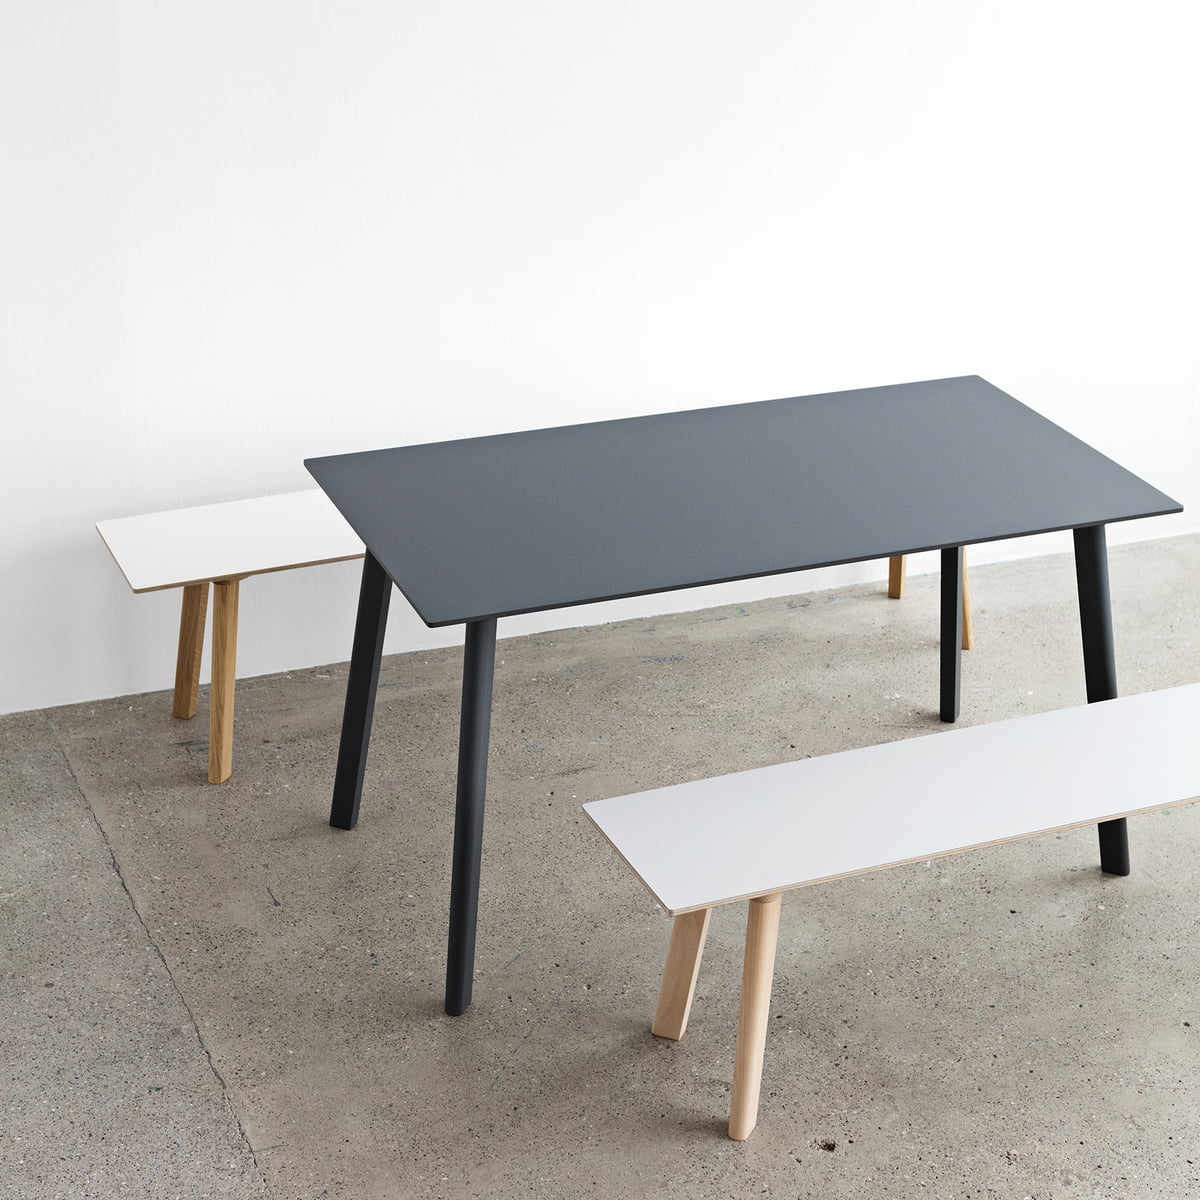 Hay Esstisch copenhague deux 210 table by hay in the shop